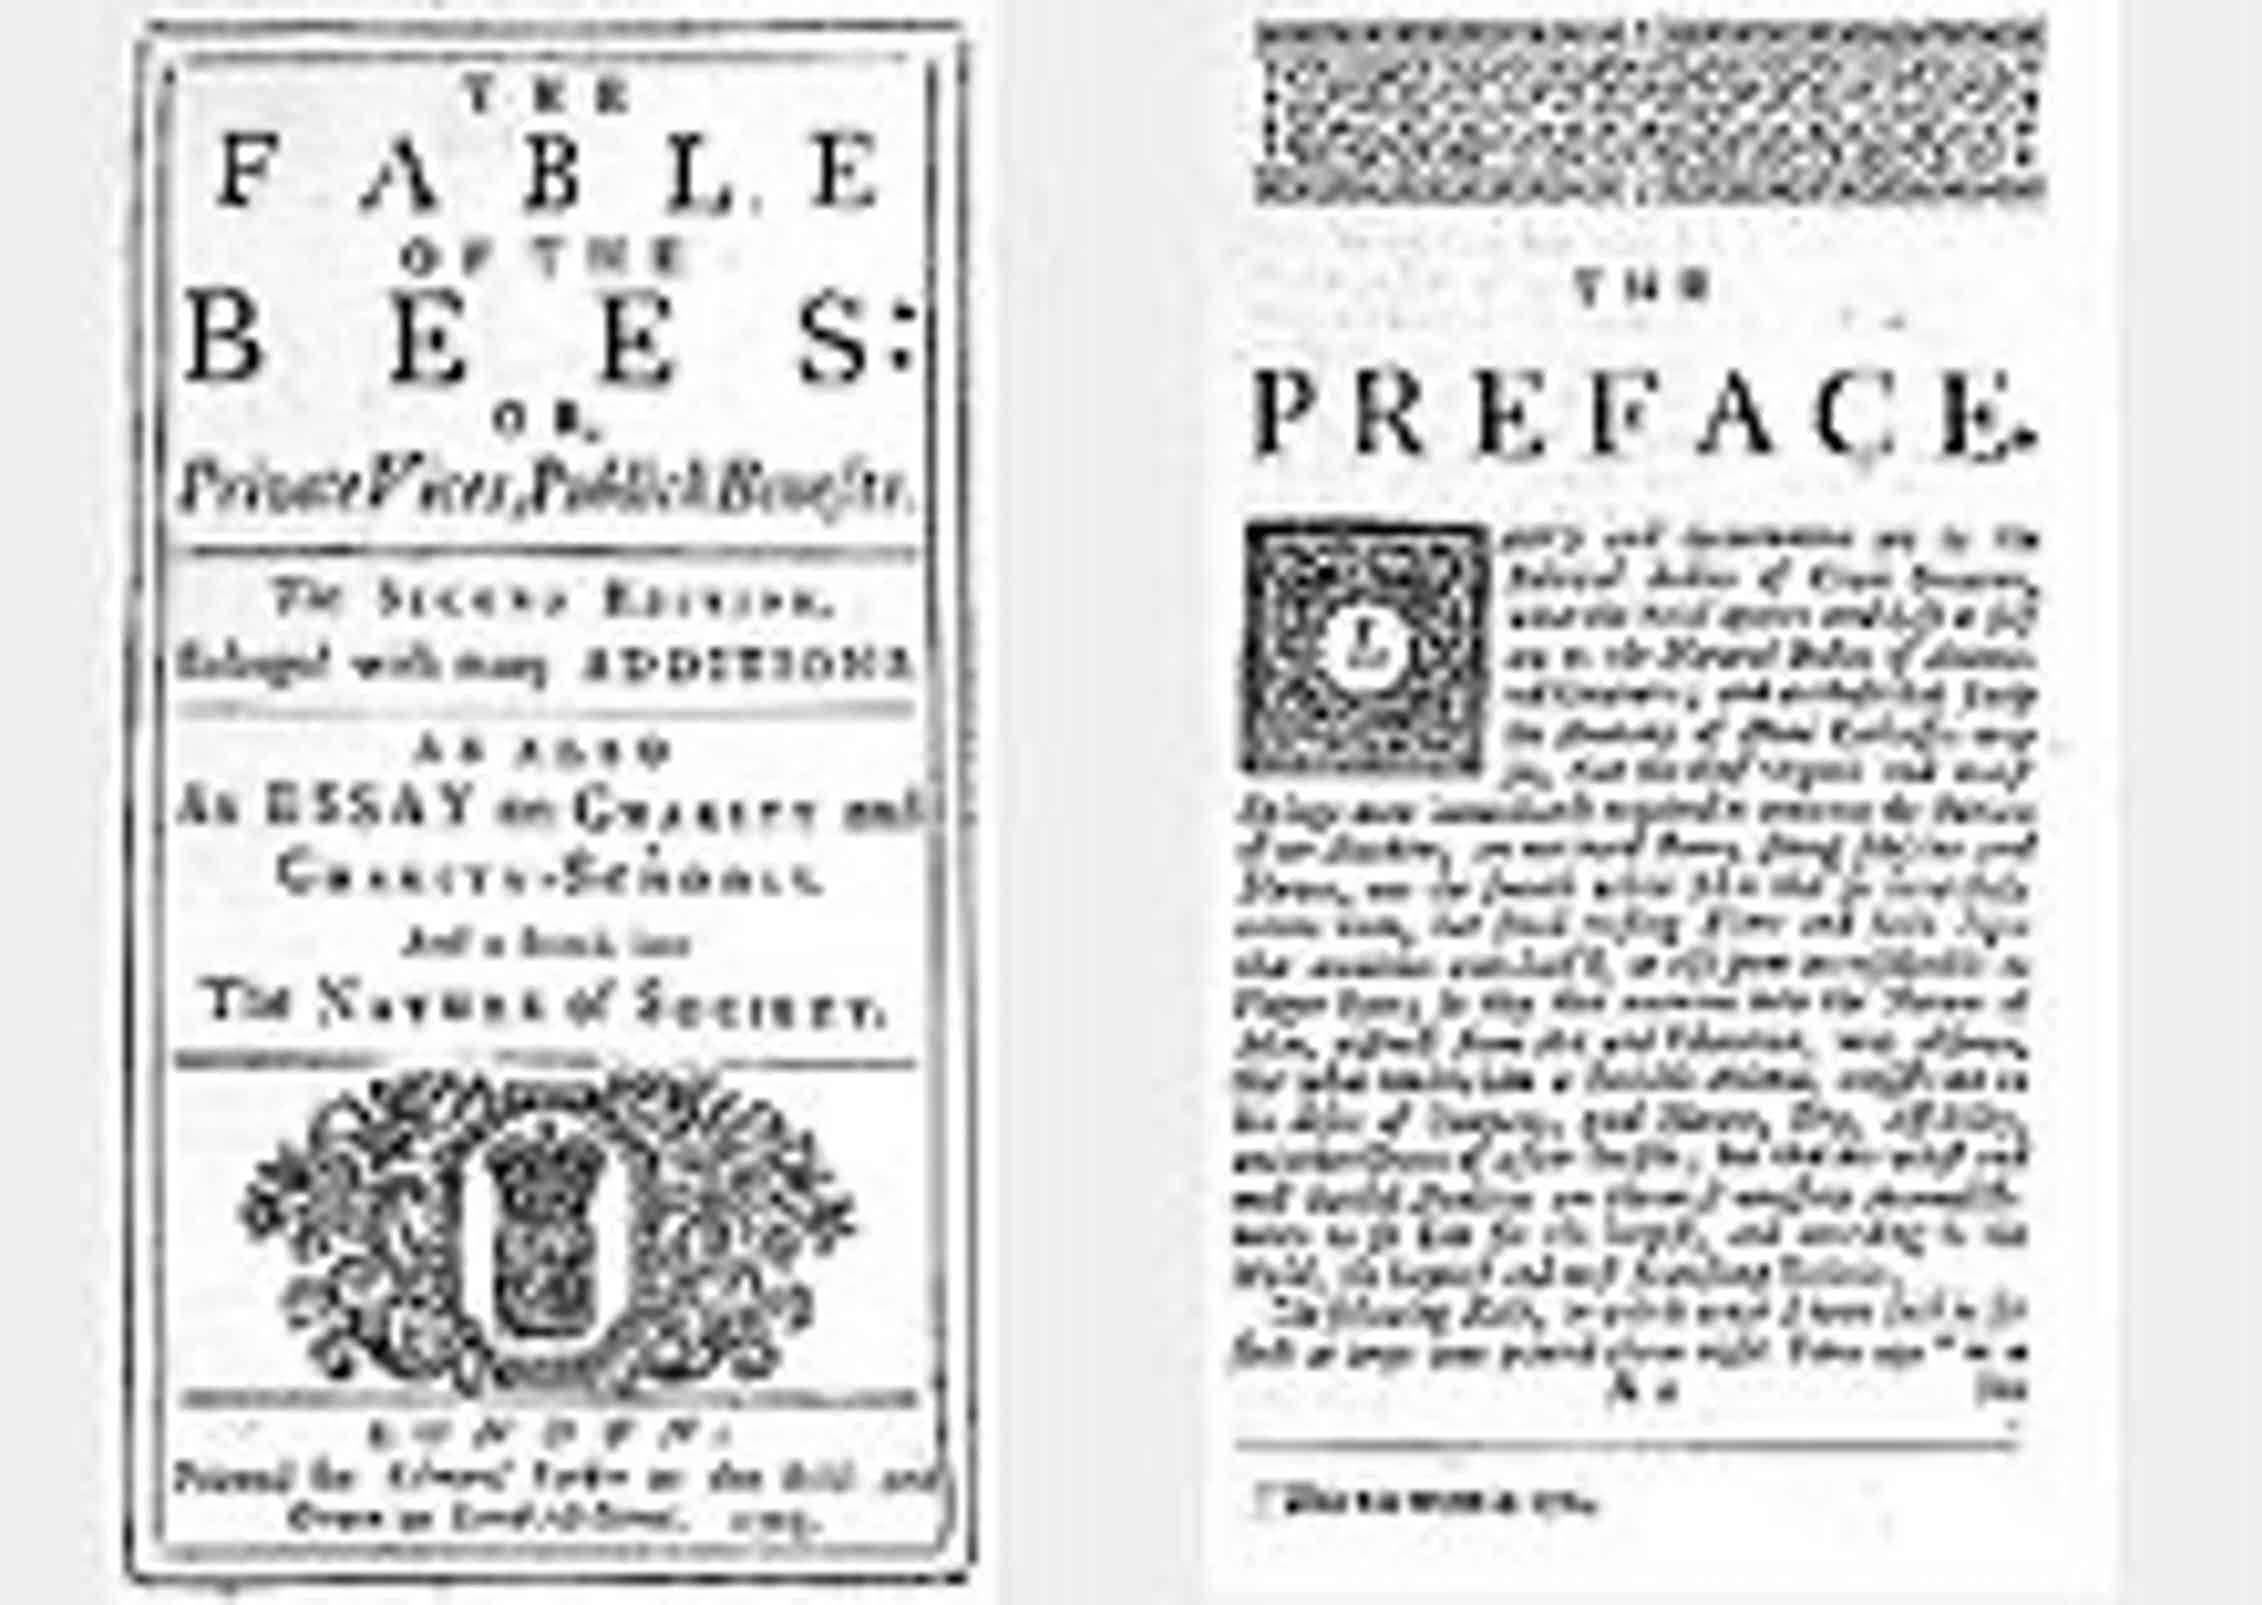 The Fable of the Bees ( Bernard de Mandeville, 1705).Wikimedia Commons